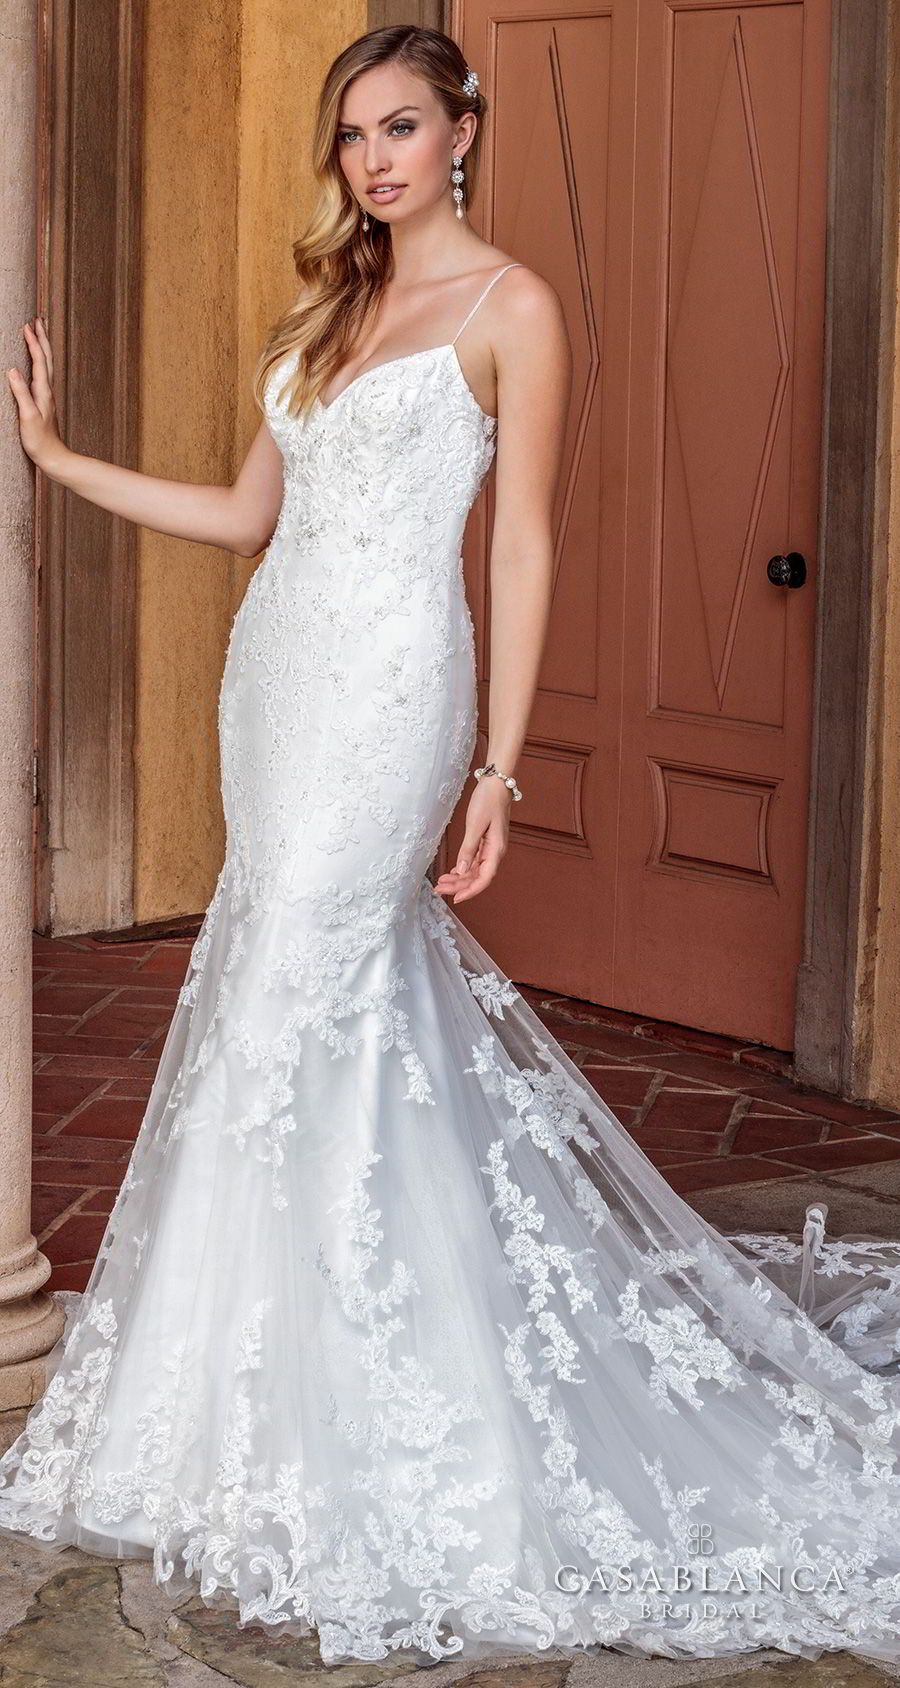 casablanca spring 2018 spaghetti strap sweetheart neckline full embellishment elegant fit and flare wedding dress low open back chapel train (marley) mv